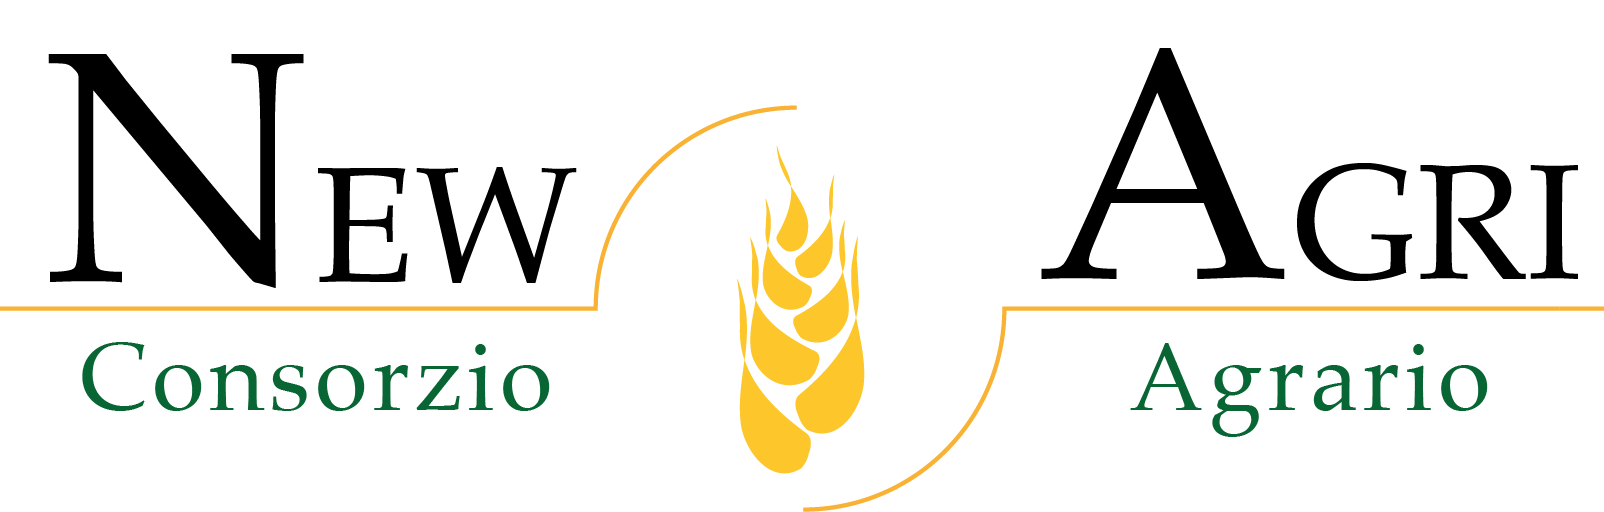 Logo new agri copia